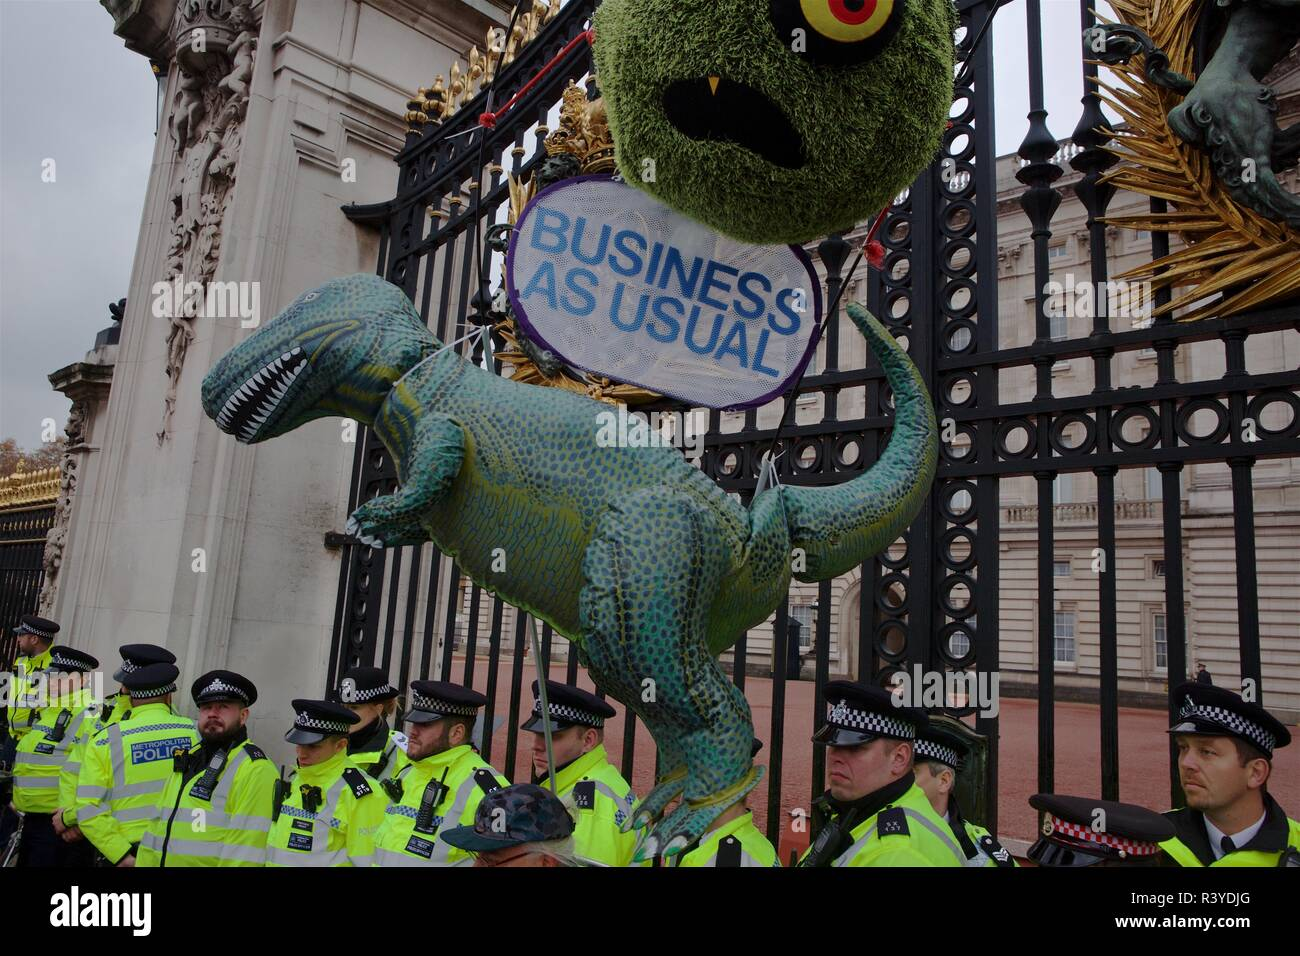 Saturday November 24 2018. Climate change campaign group Extinction Rebellion fly a replica dinosaur outside the gates of Buckingham Palace - London, UK, - Stock Image